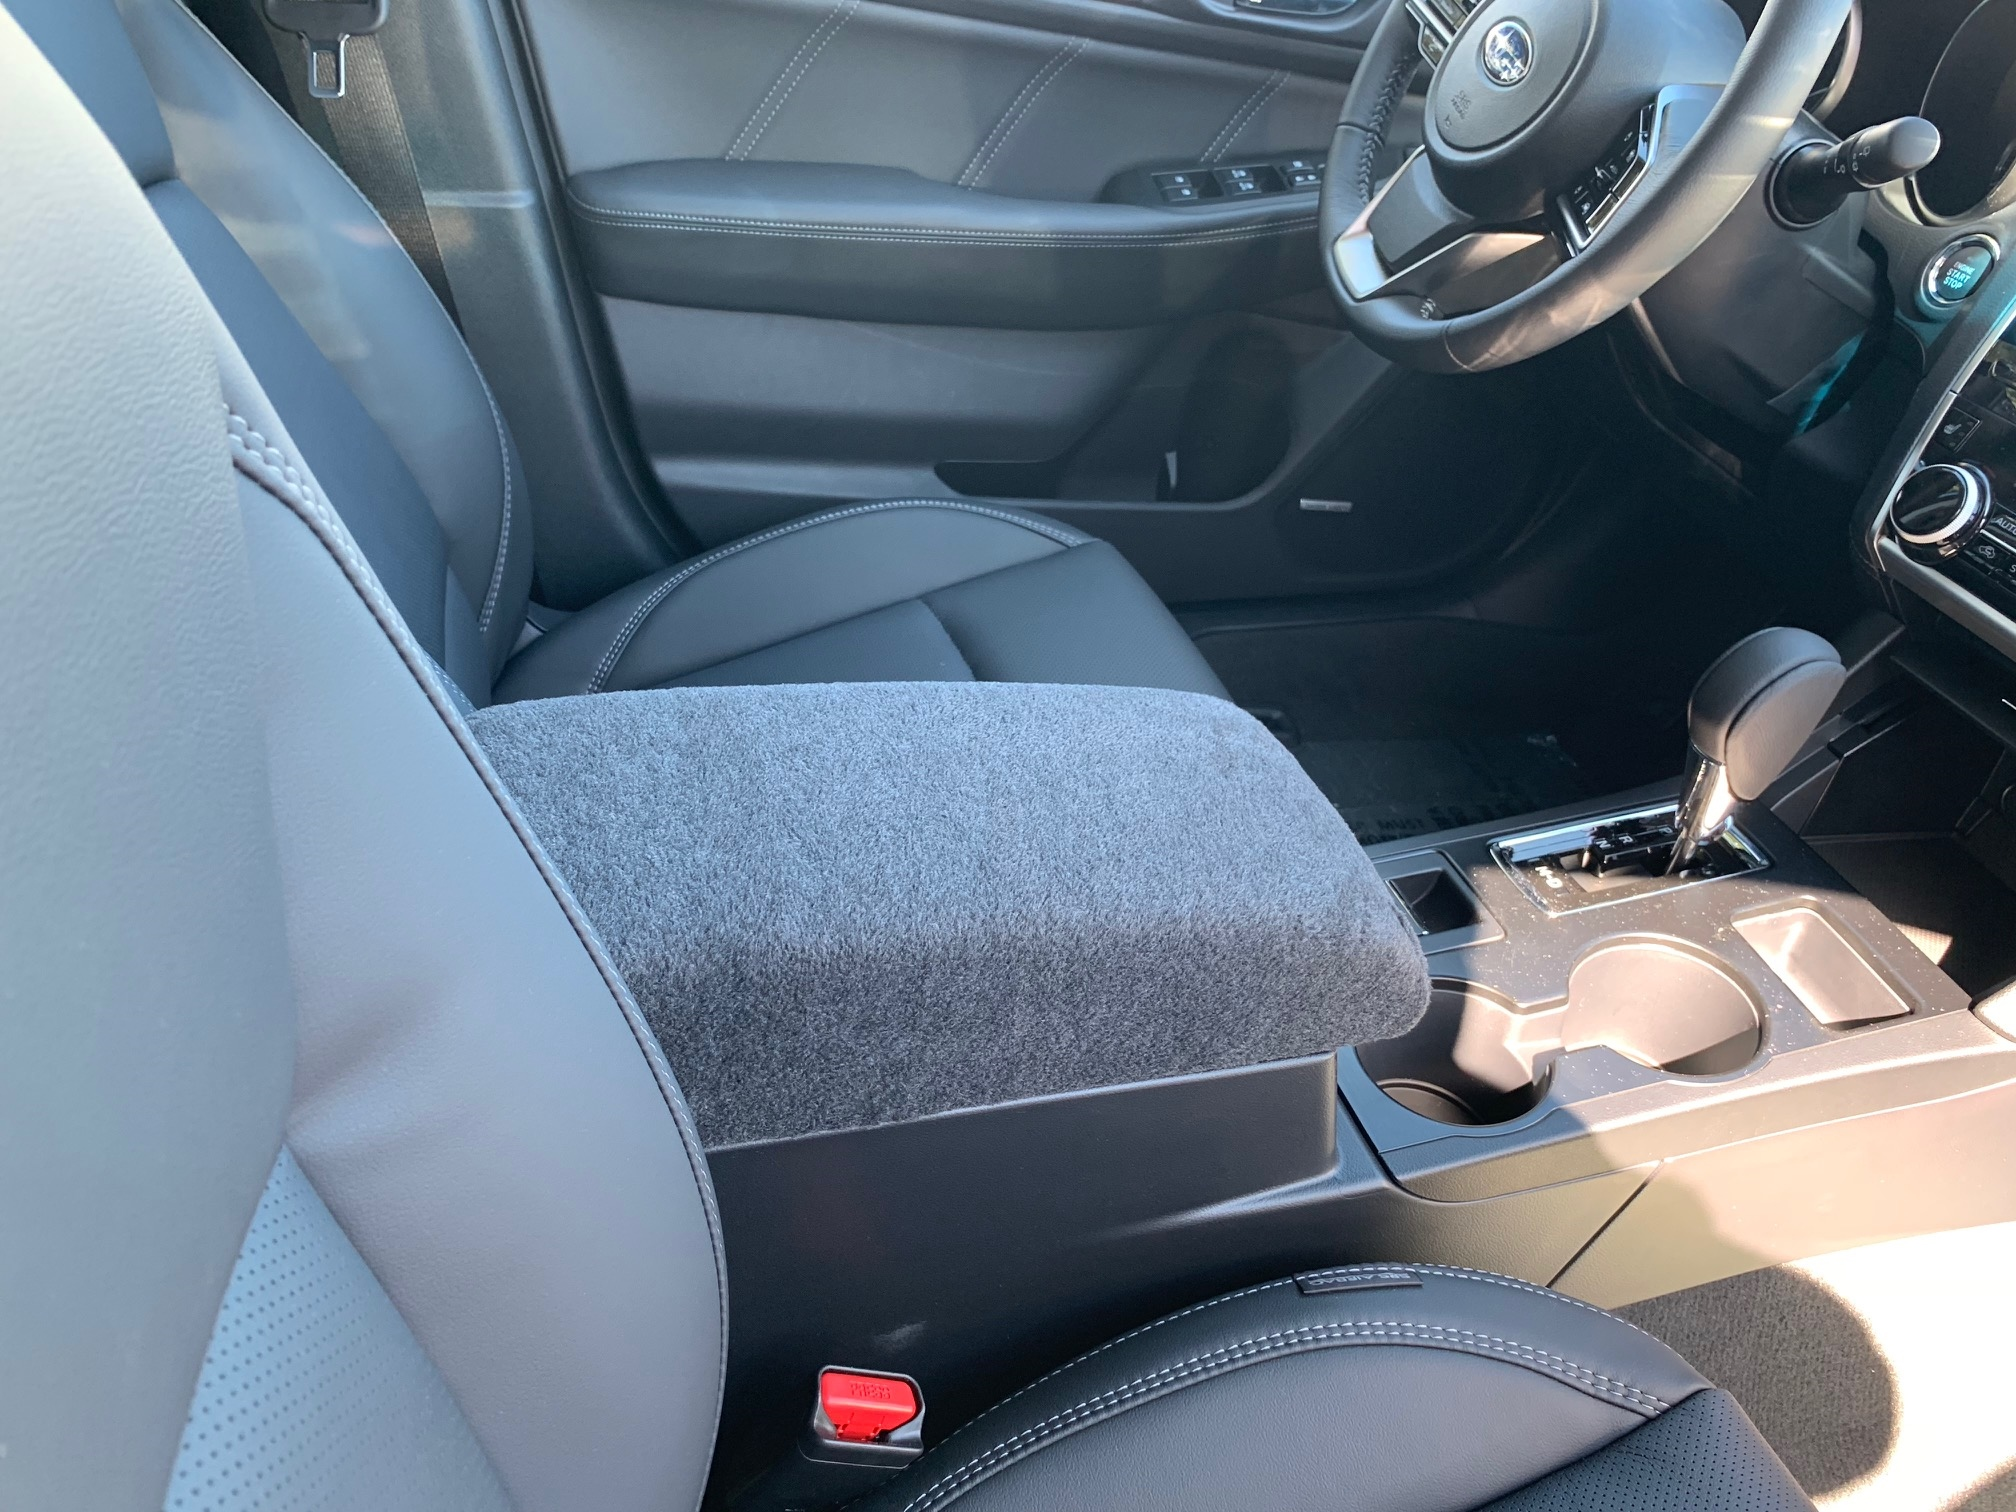 Buy Fleece Center Console Armrest Cover fits the Subaru Outback 2015-2019